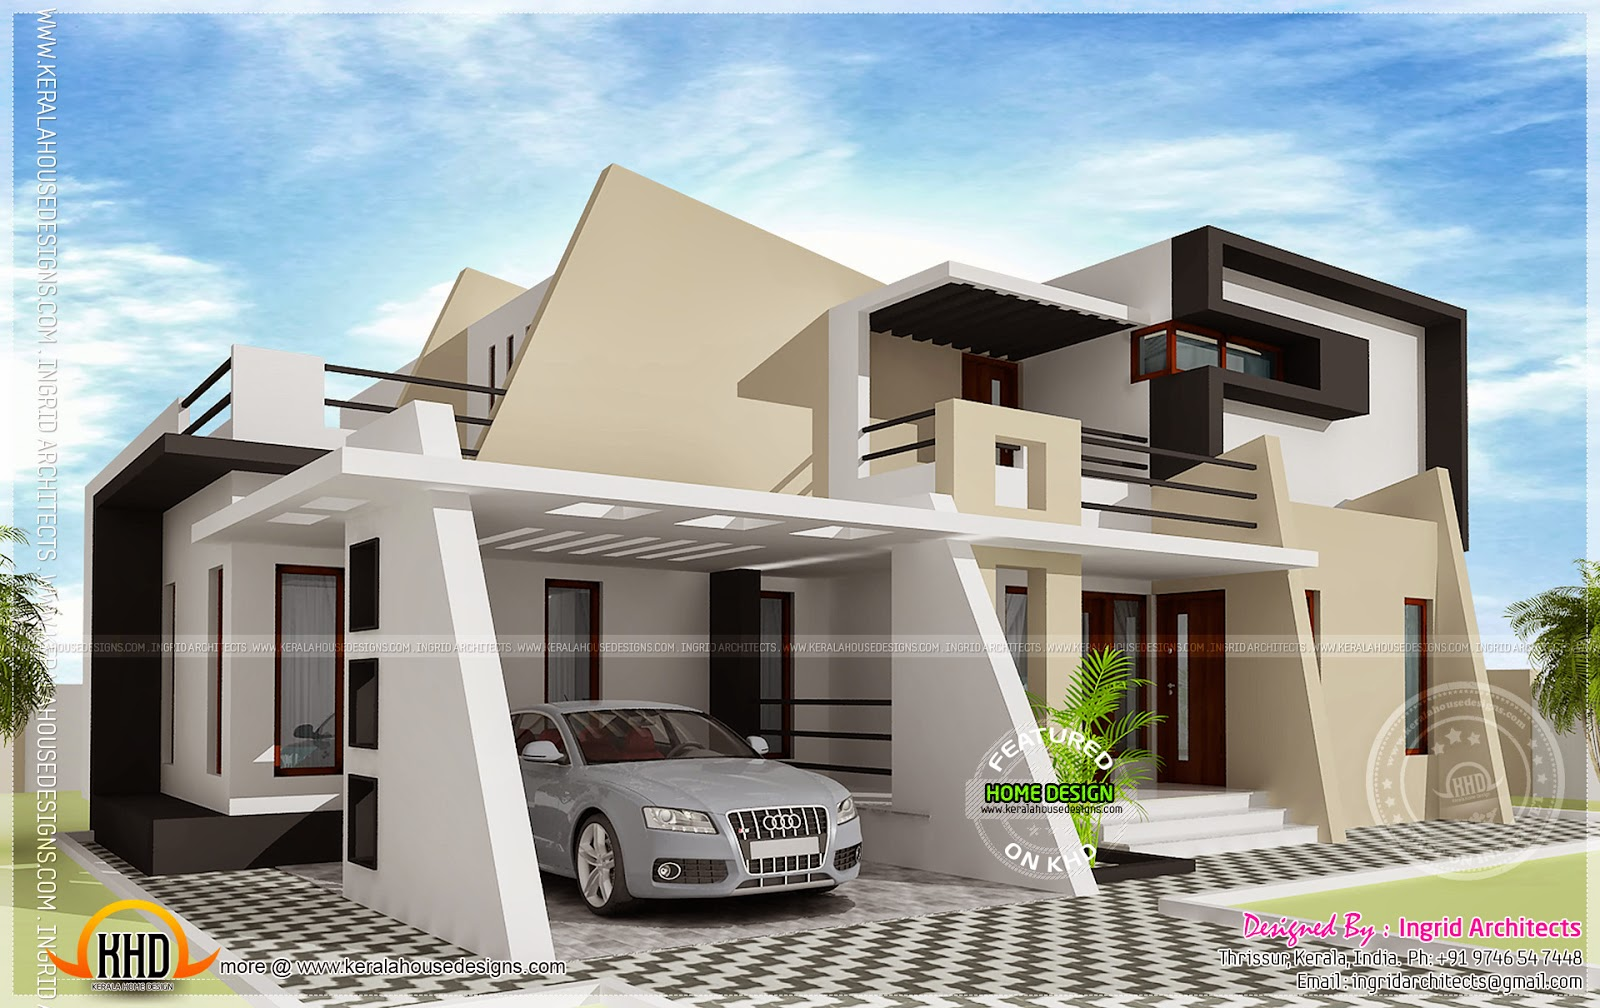 316 square meter contemporary home home kerala plans Contemporary home design